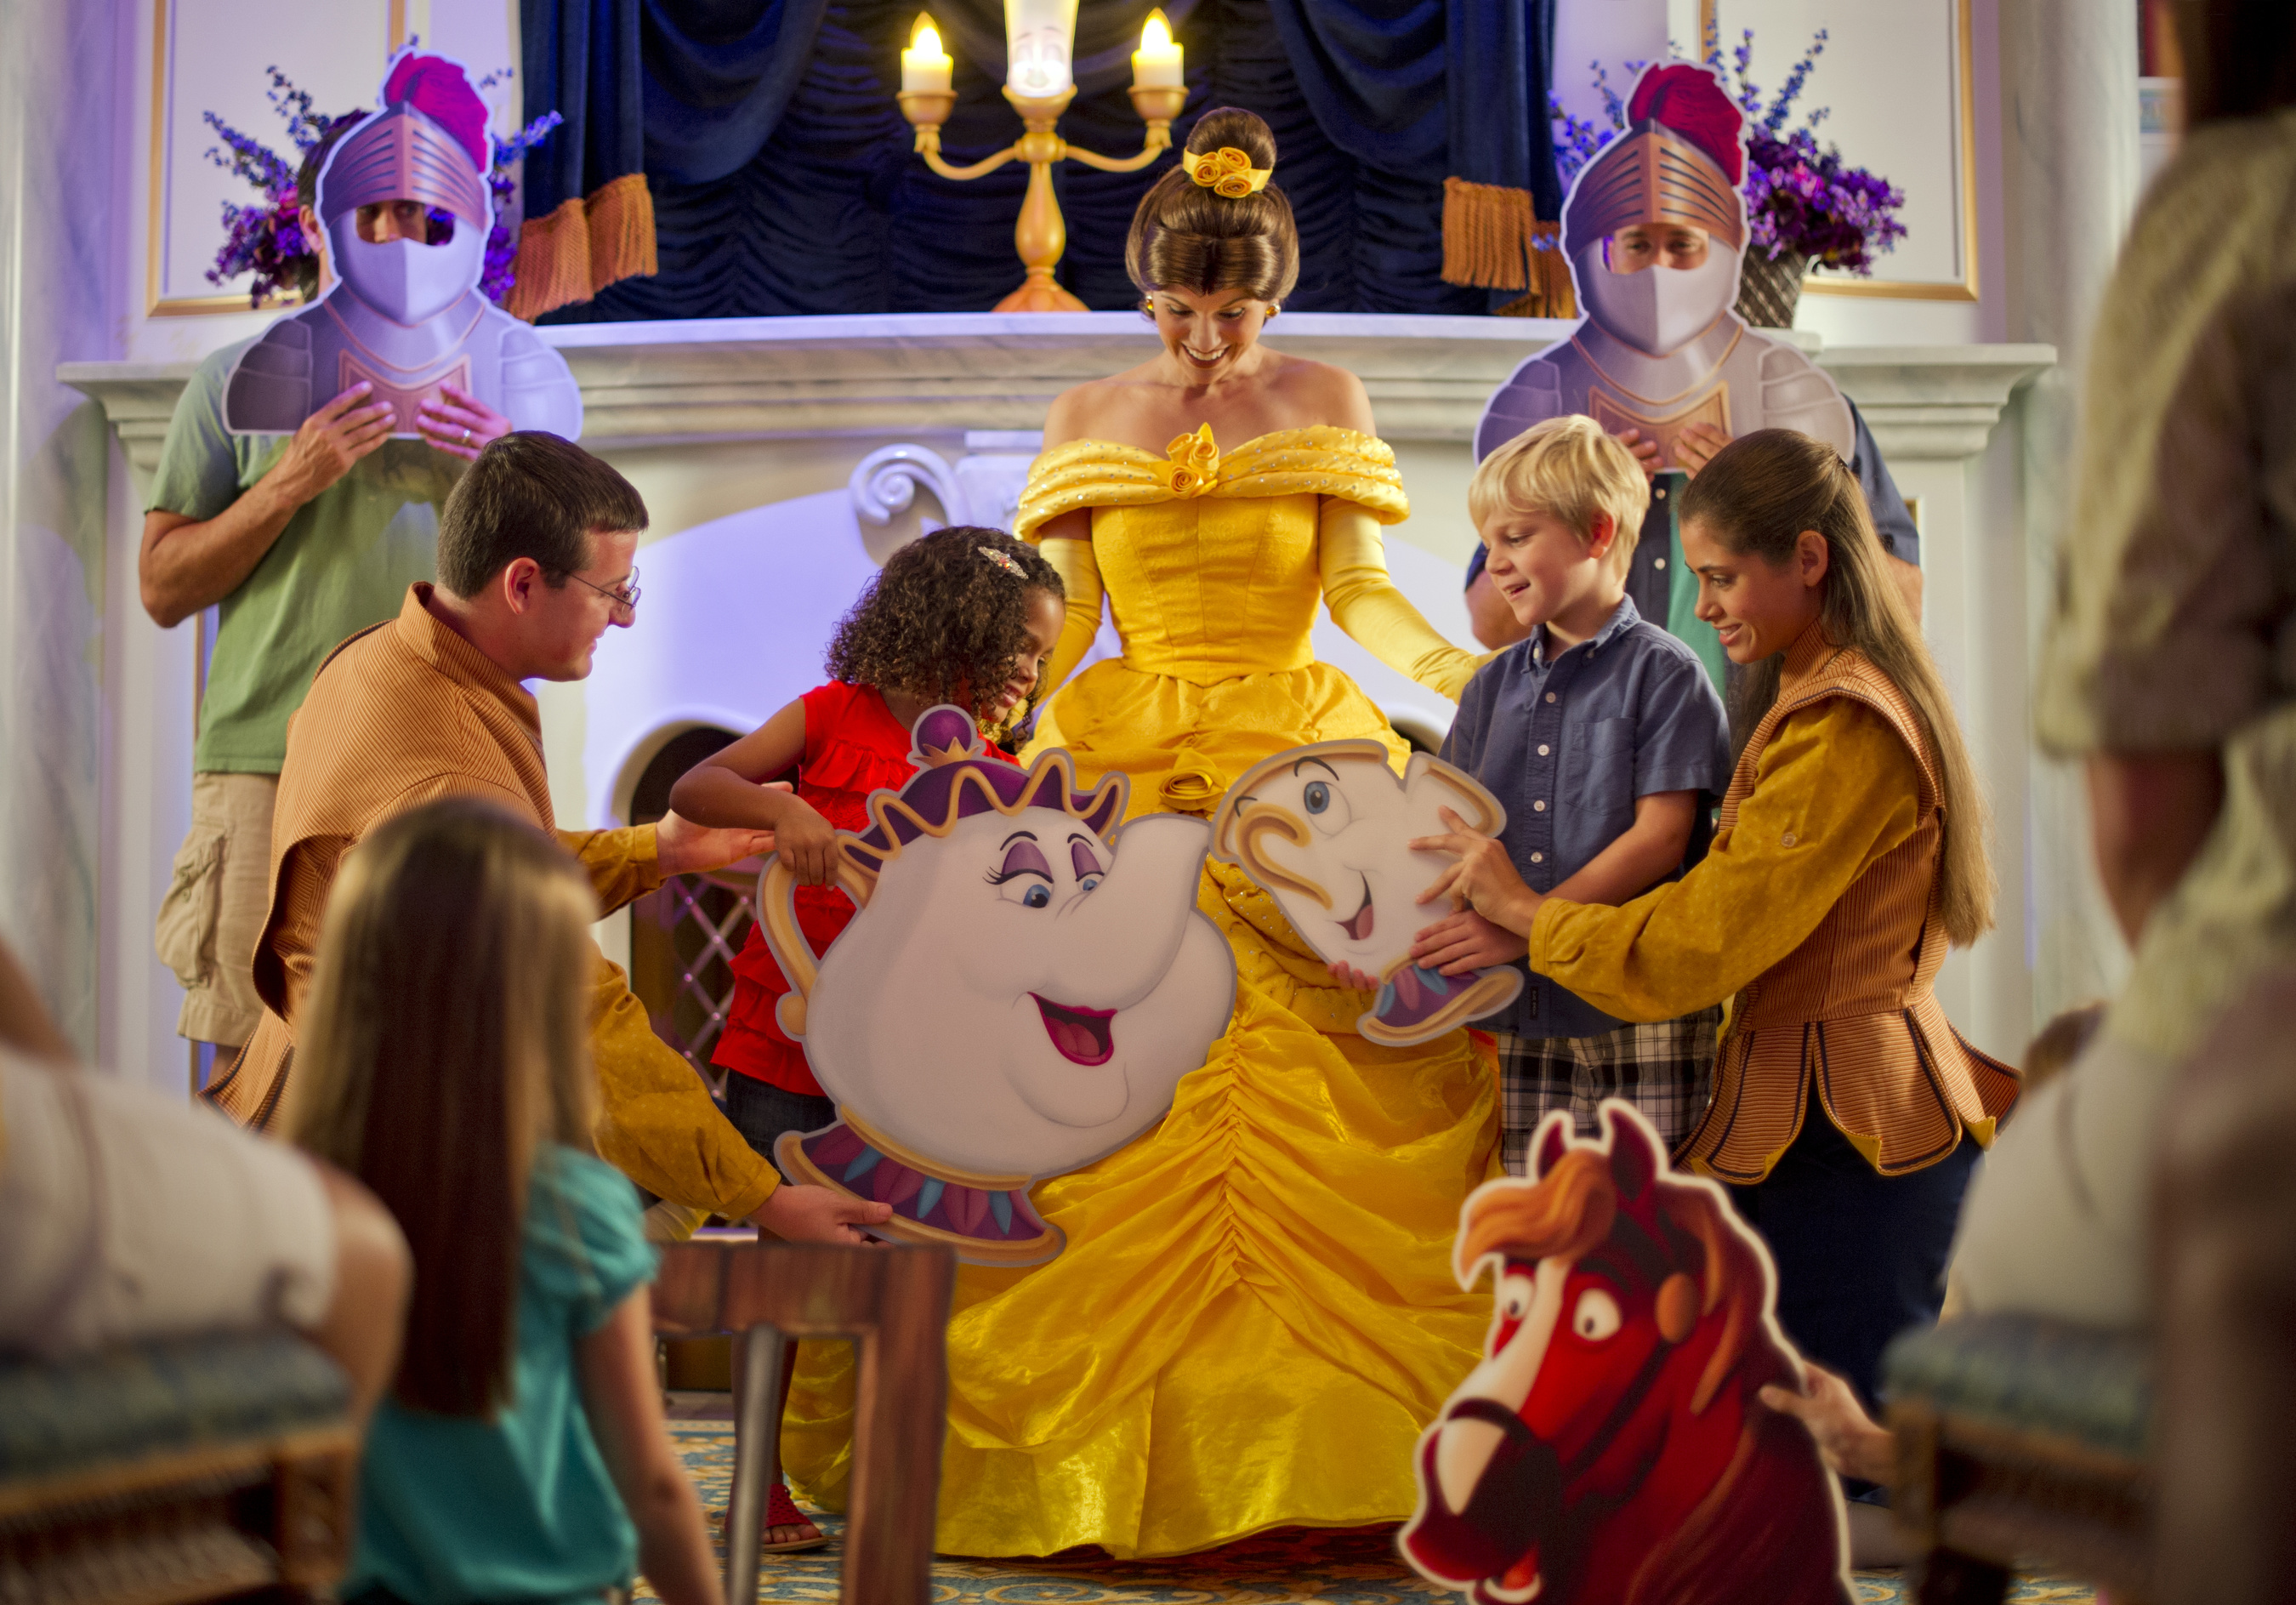 Magic Kingdom guests join Belle and Lumiere in a fun-filled storytelling adventure